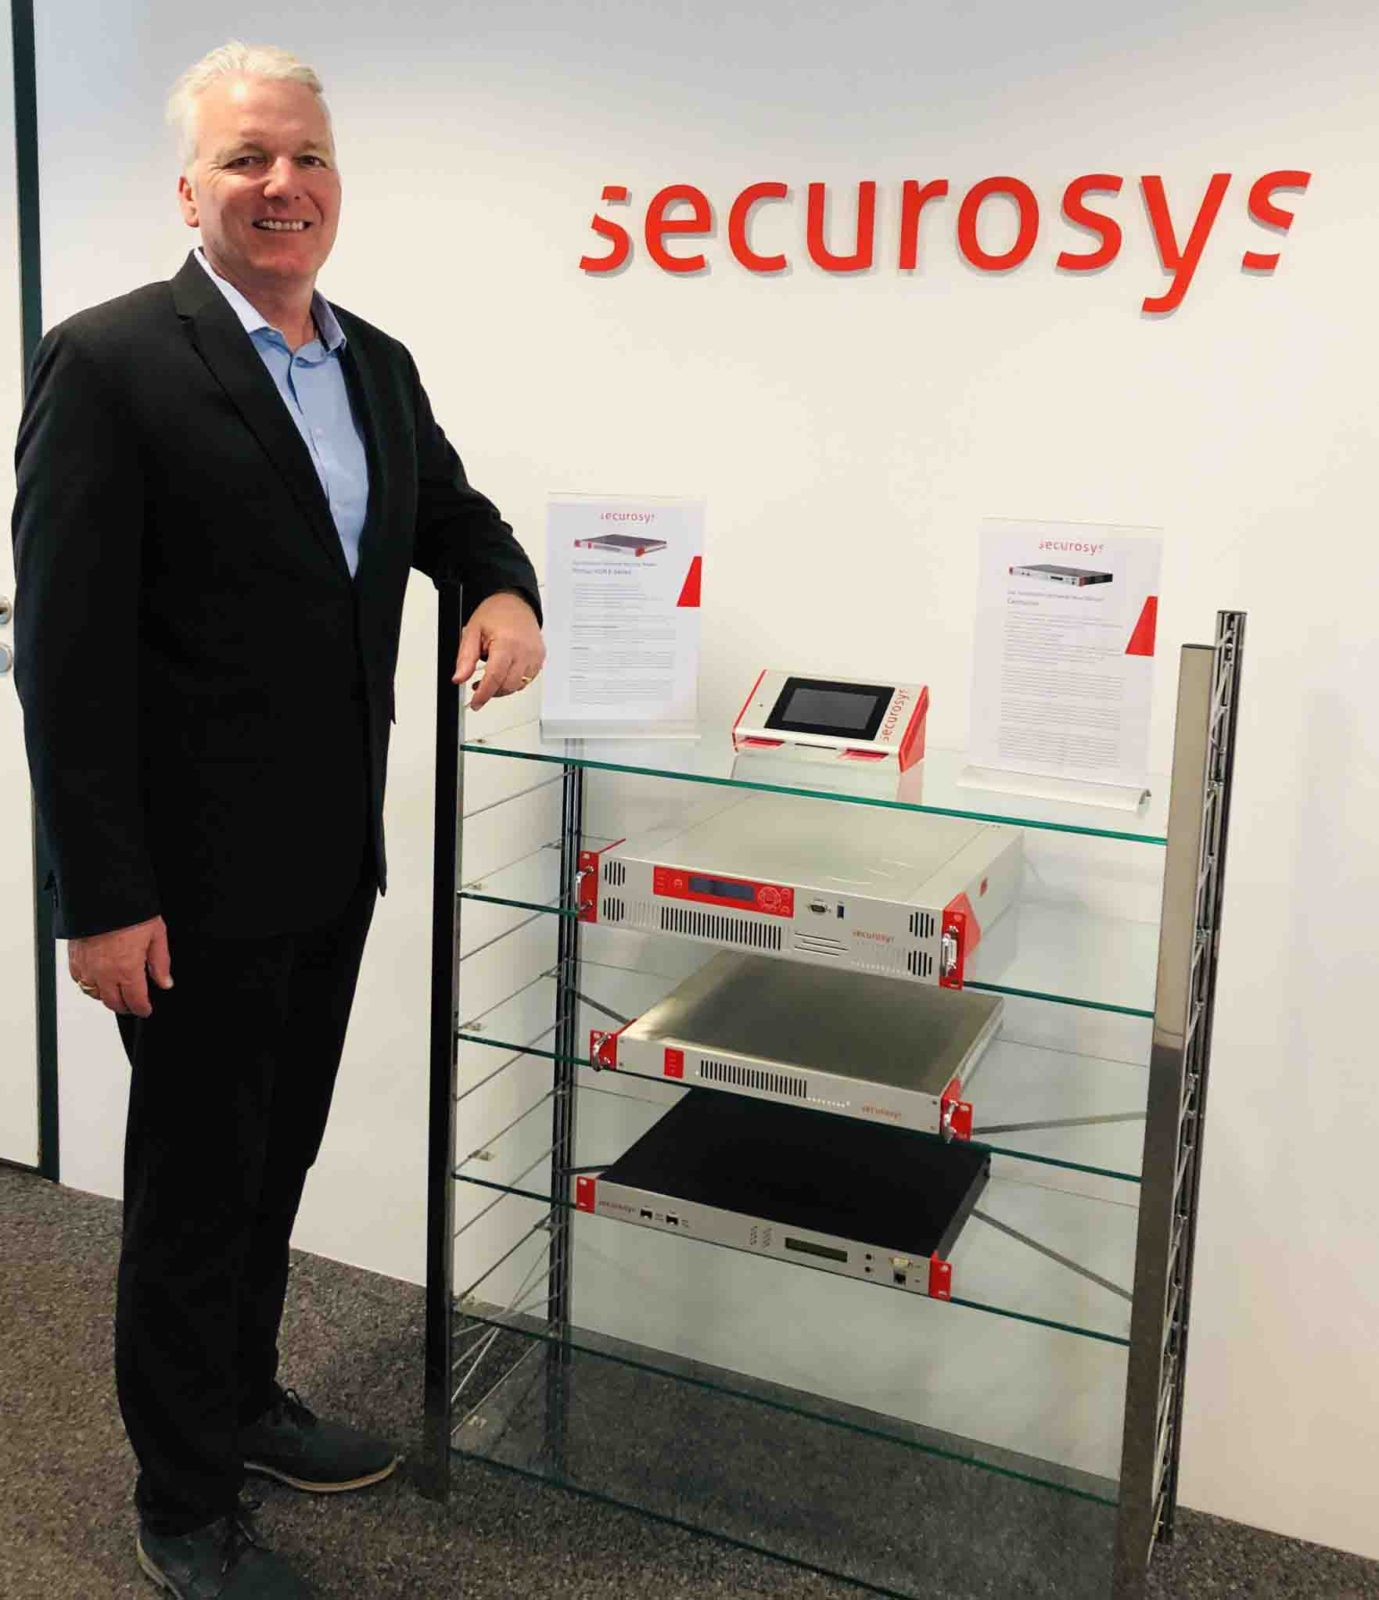 Robert-Securosys with HSM solution